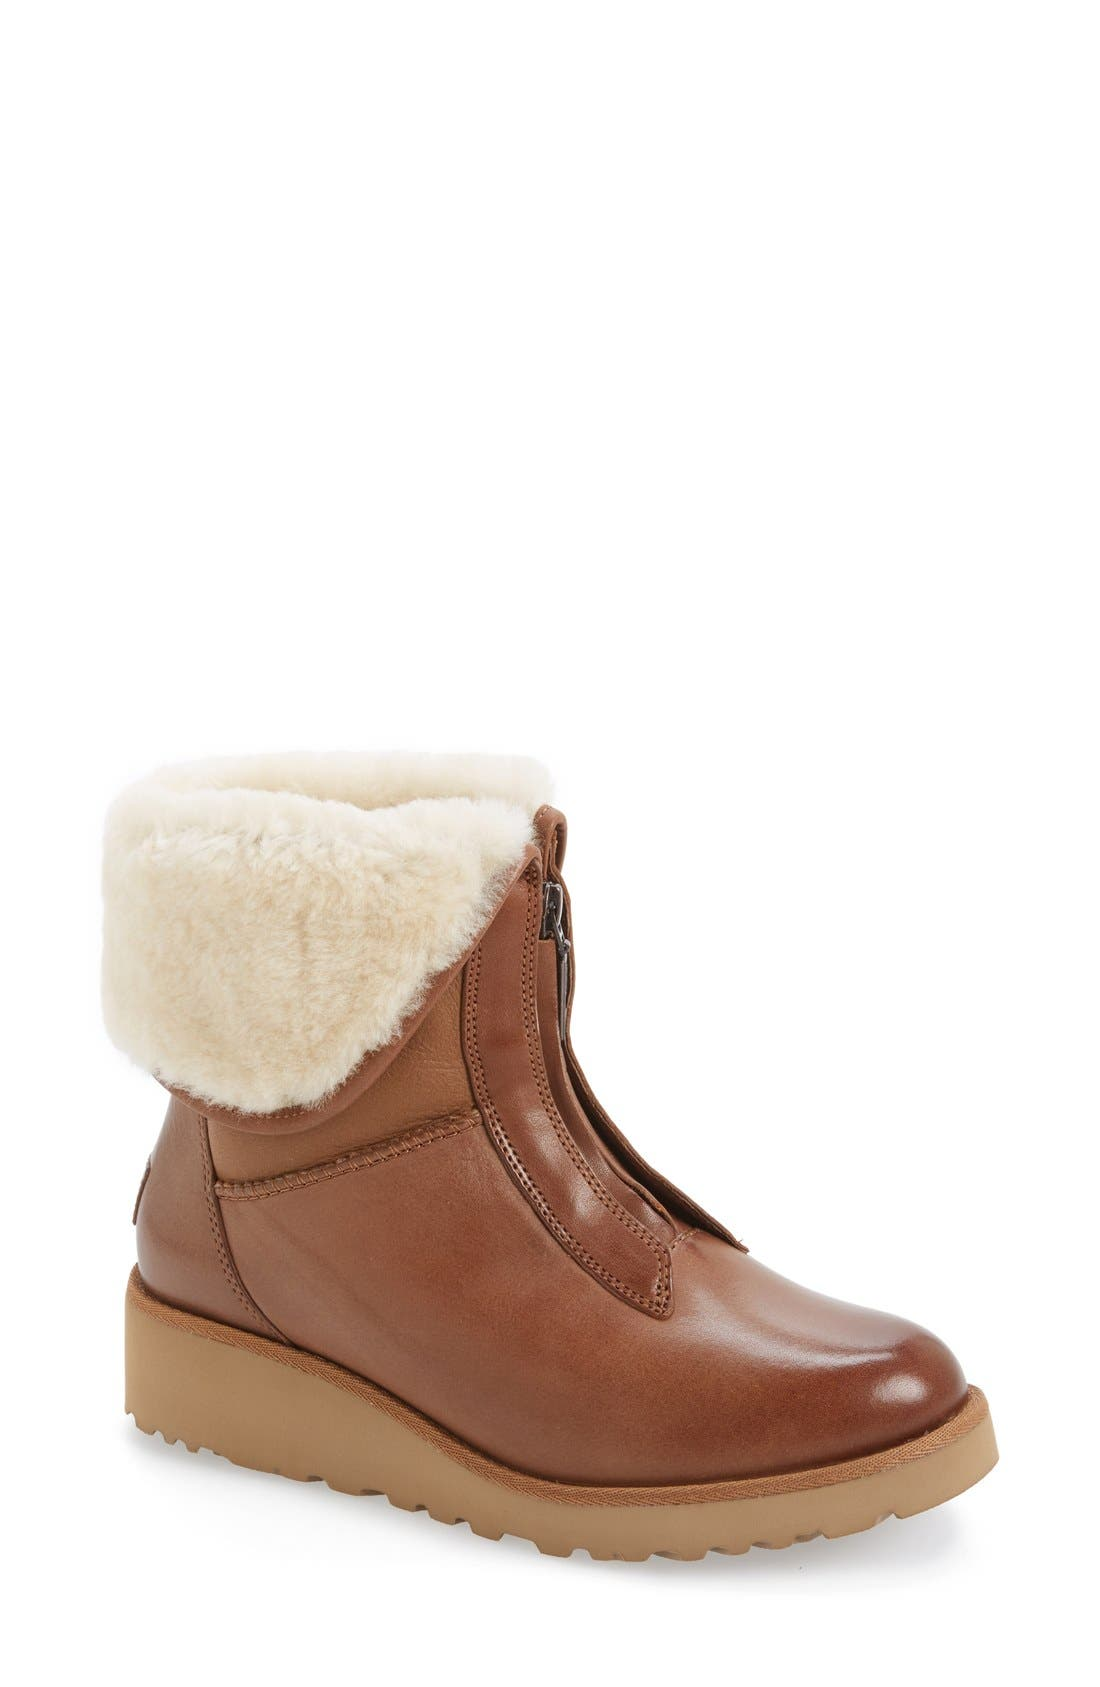 Alternate Image 1 Selected - UGG® 'Caleigh' Boot (Women)